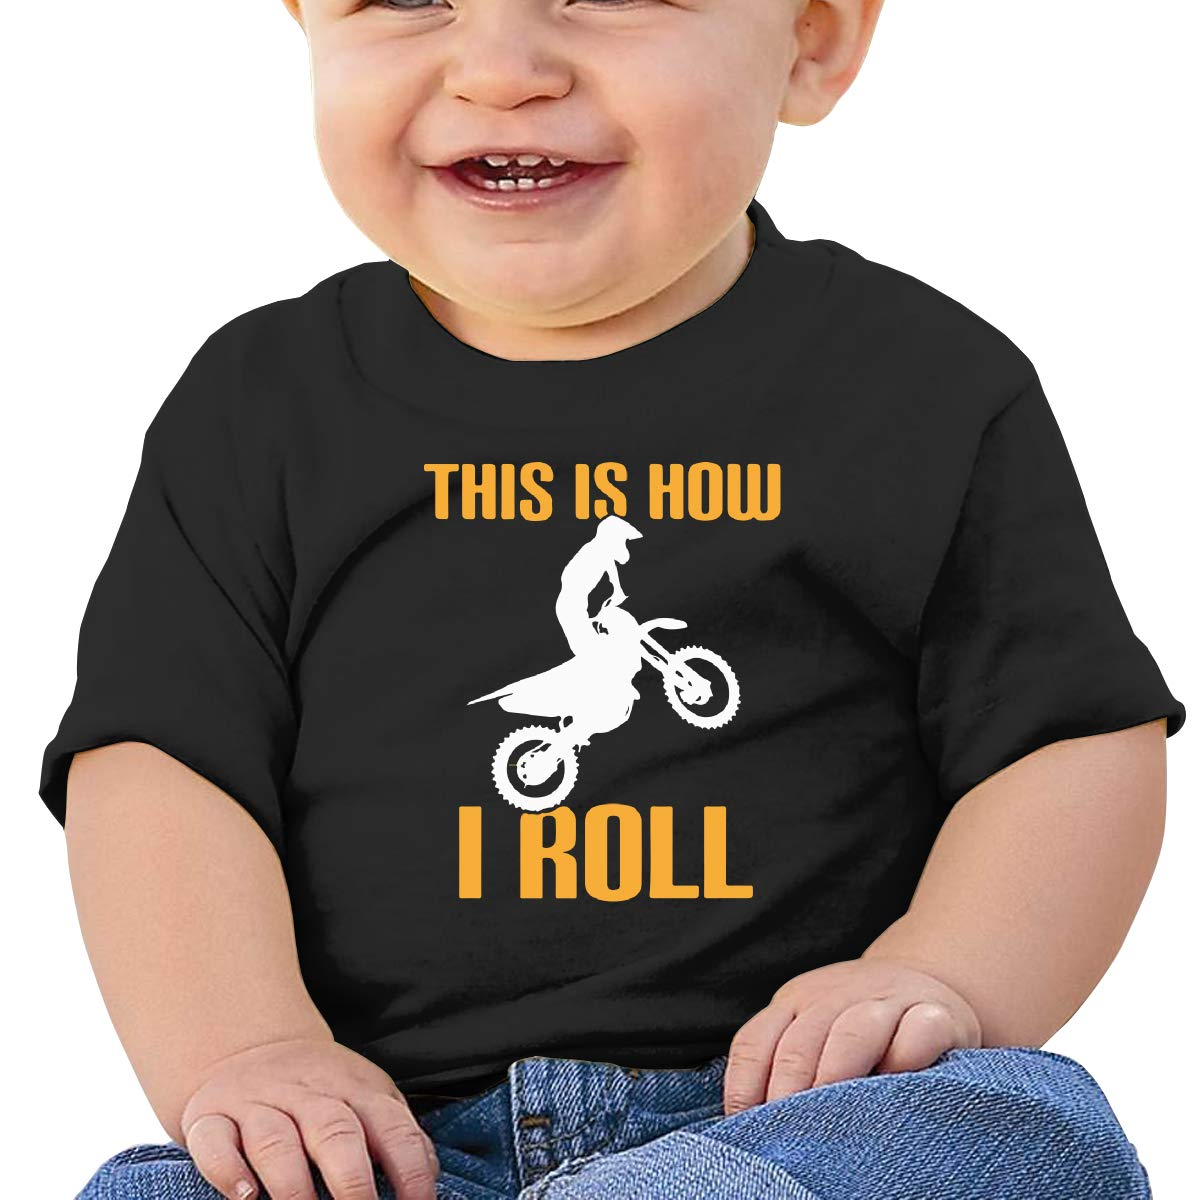 This is How I Roll Motorcycle Baby Girls Newborn Short Sleeve Tee Shirt 6-24 Month Soft Tops